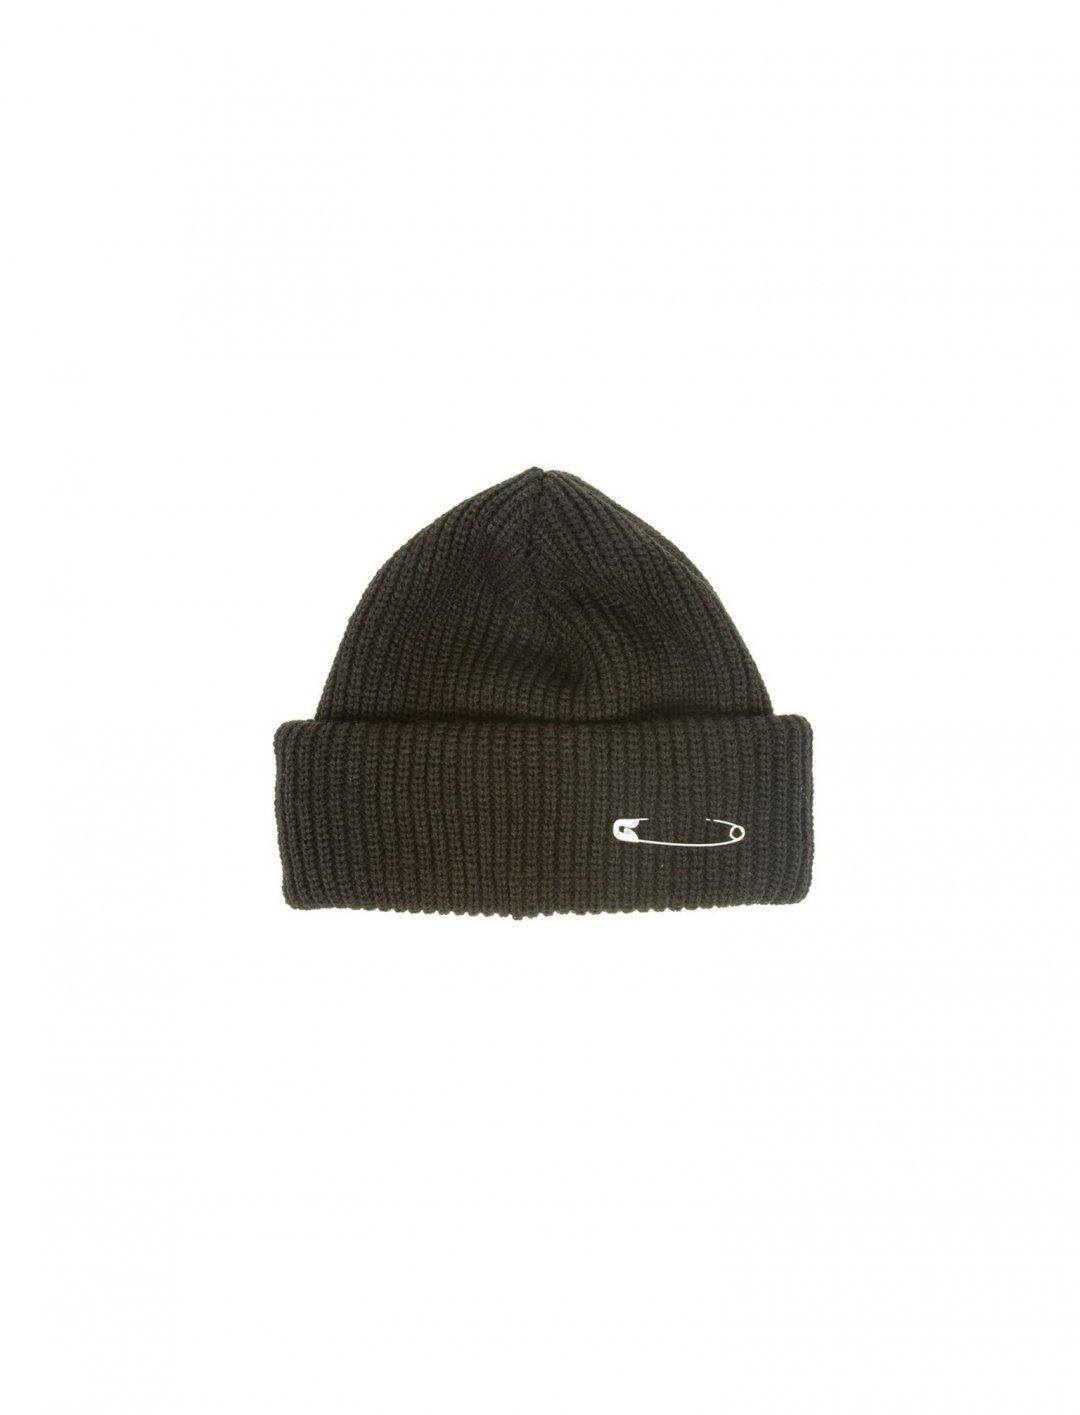 Timberlake's Cashmere Beanie Accessories Maybe Tommorow